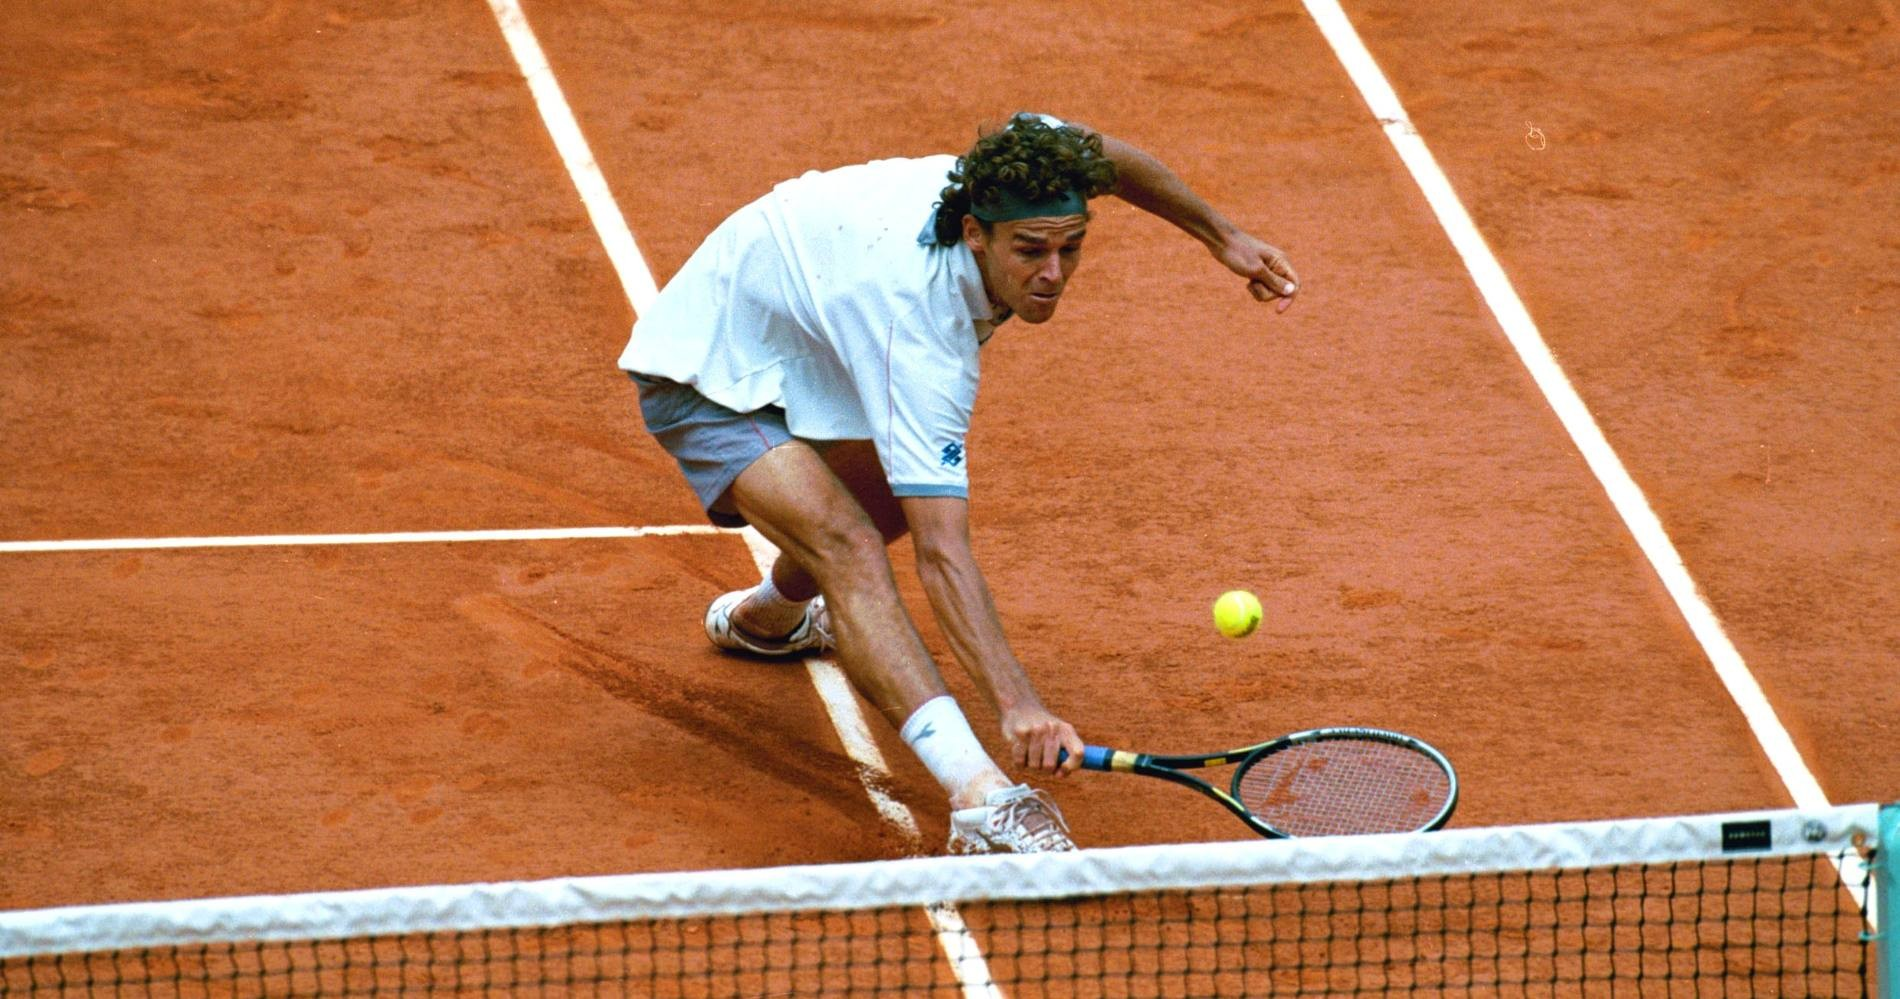 Guga Kuerten at the French Open in 2001